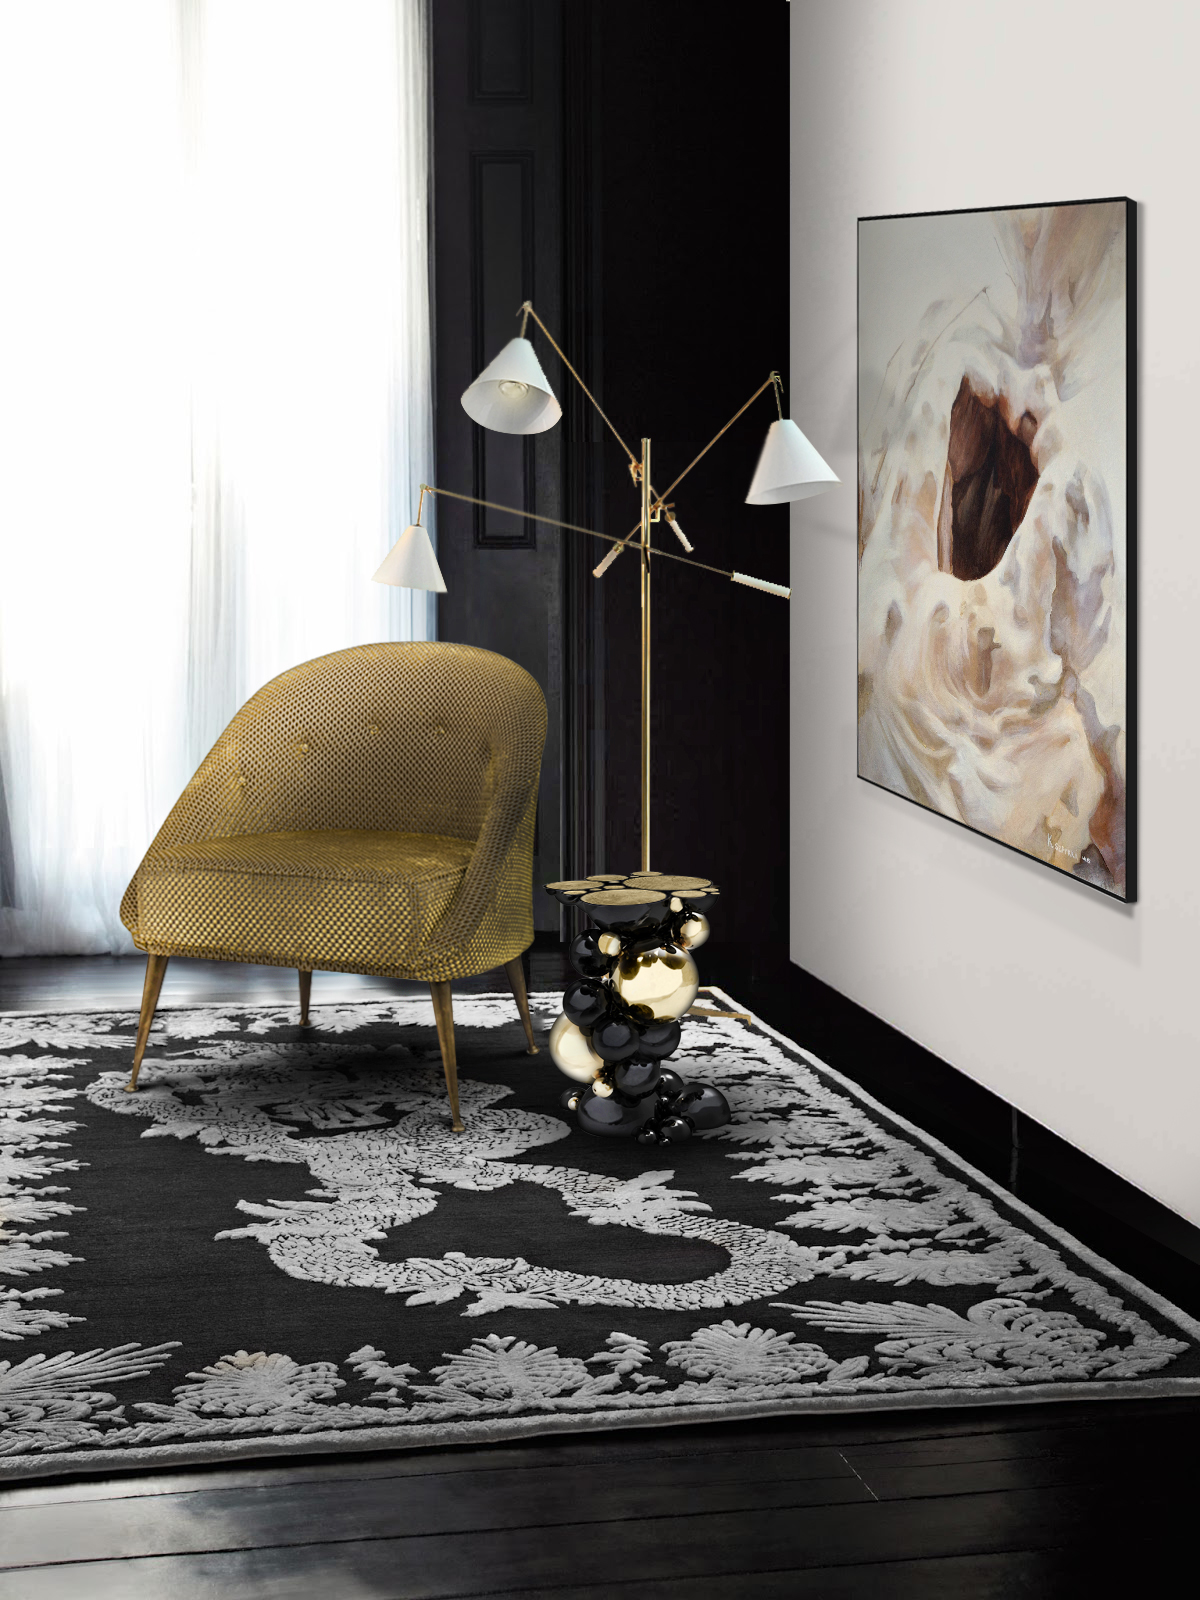 Perfect Modern Floor Lamps for a Modern and Stylish Home Design (1) modern floor lamps Perfect Modern Floor Lamps for a Stylish Home Design Perfect Modern Floor Lamps for a Modern and Stylish Home Design 7